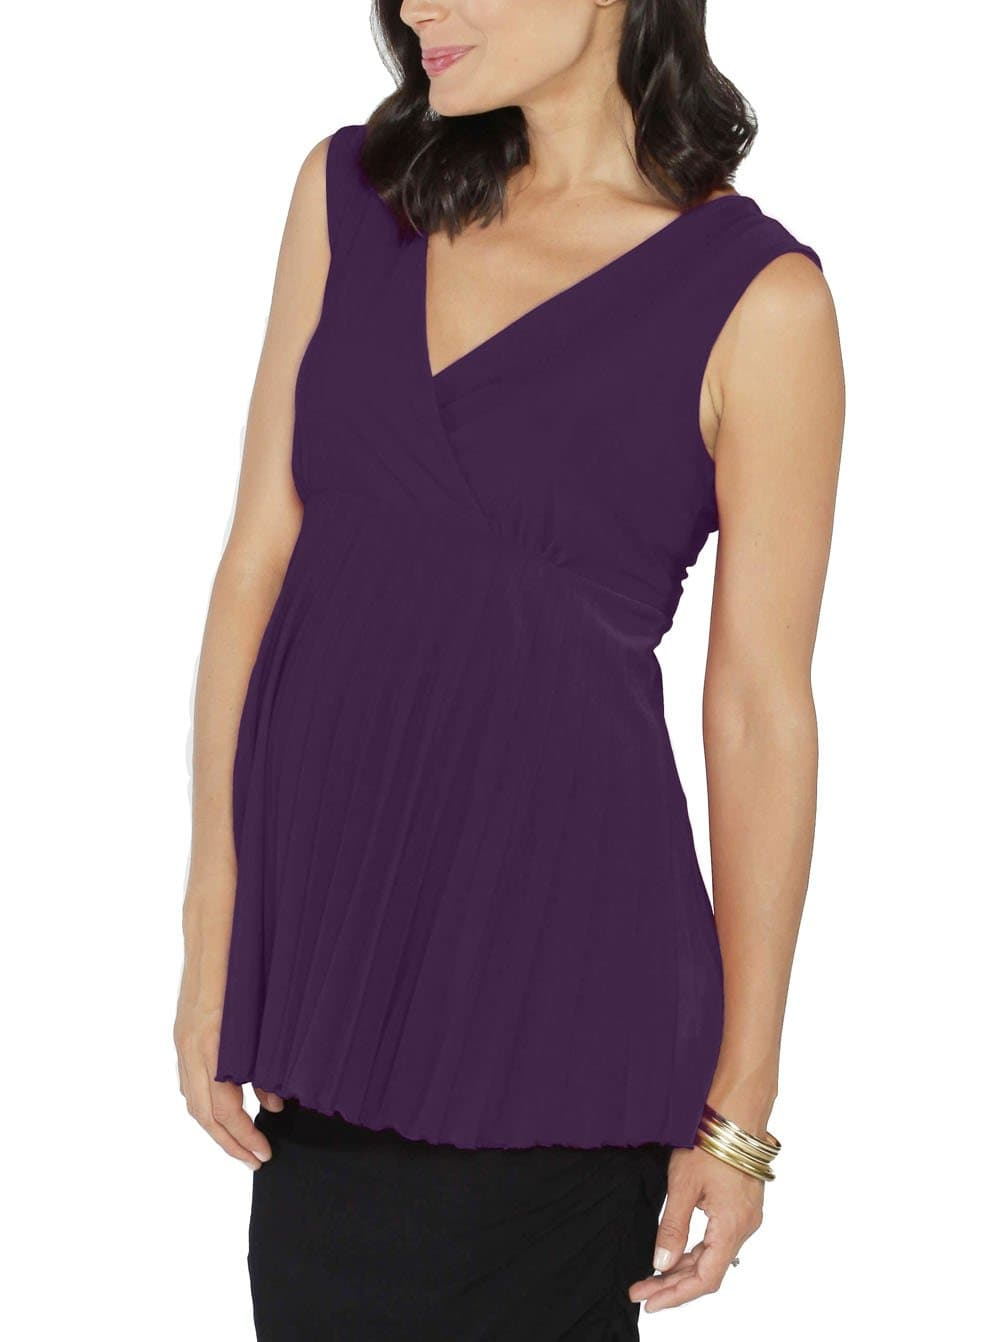 Maternity Crossover Soft Pleated Dressy Nursing Top - Purple - Angel Maternity - Maternity clothes - shop online